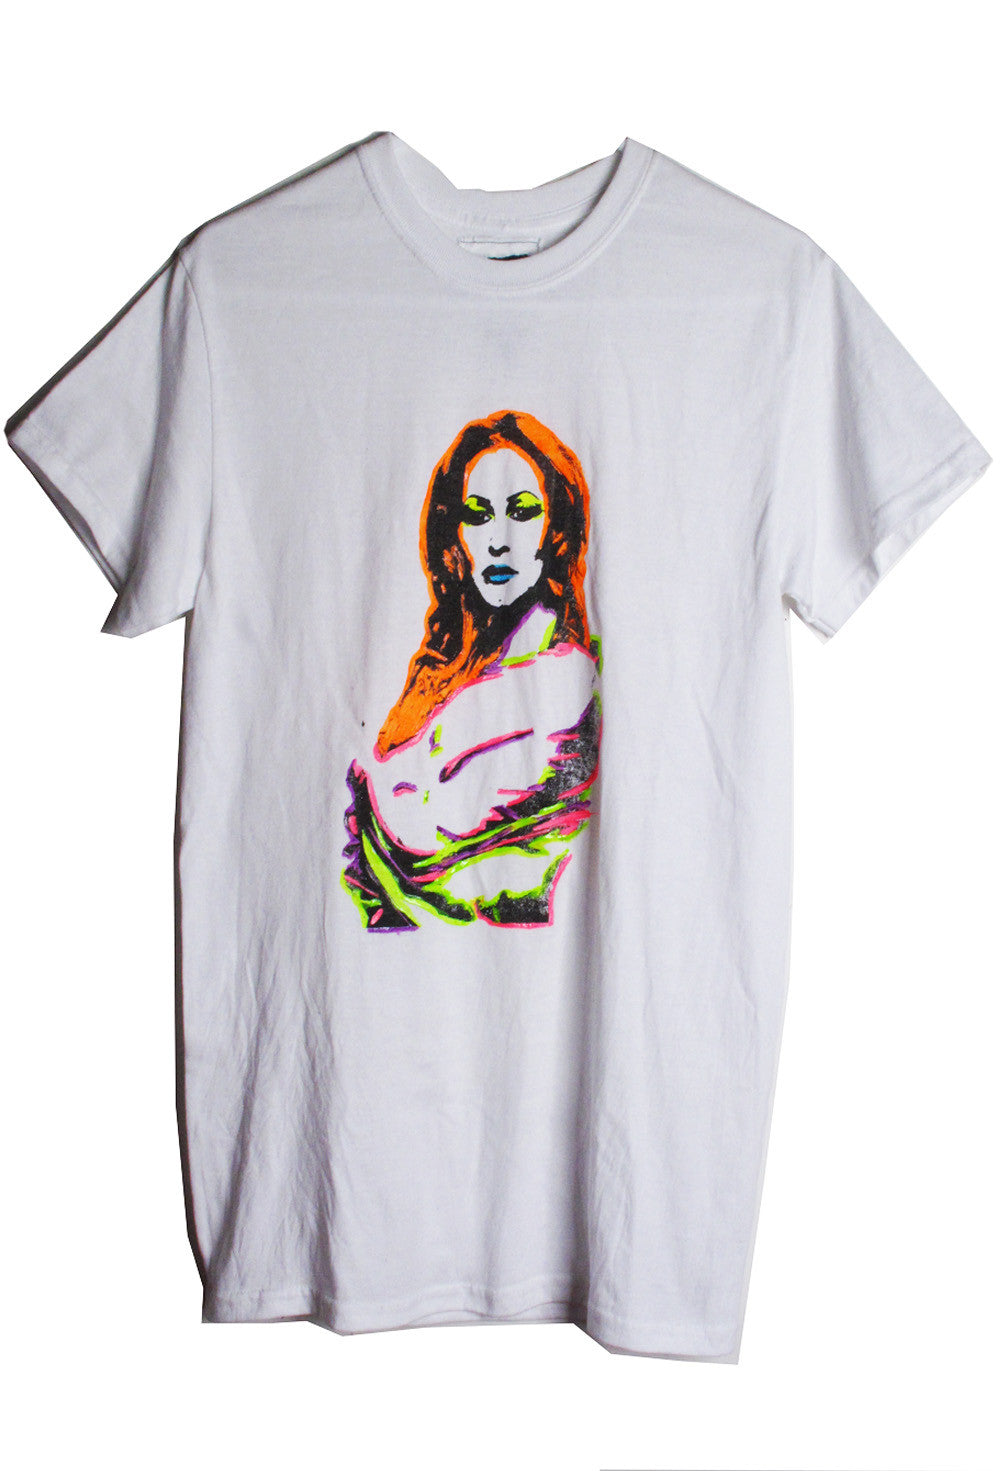 TomTom 'CODIE' Portrait Tee Shirt IMMEDIATE DELIVERY M